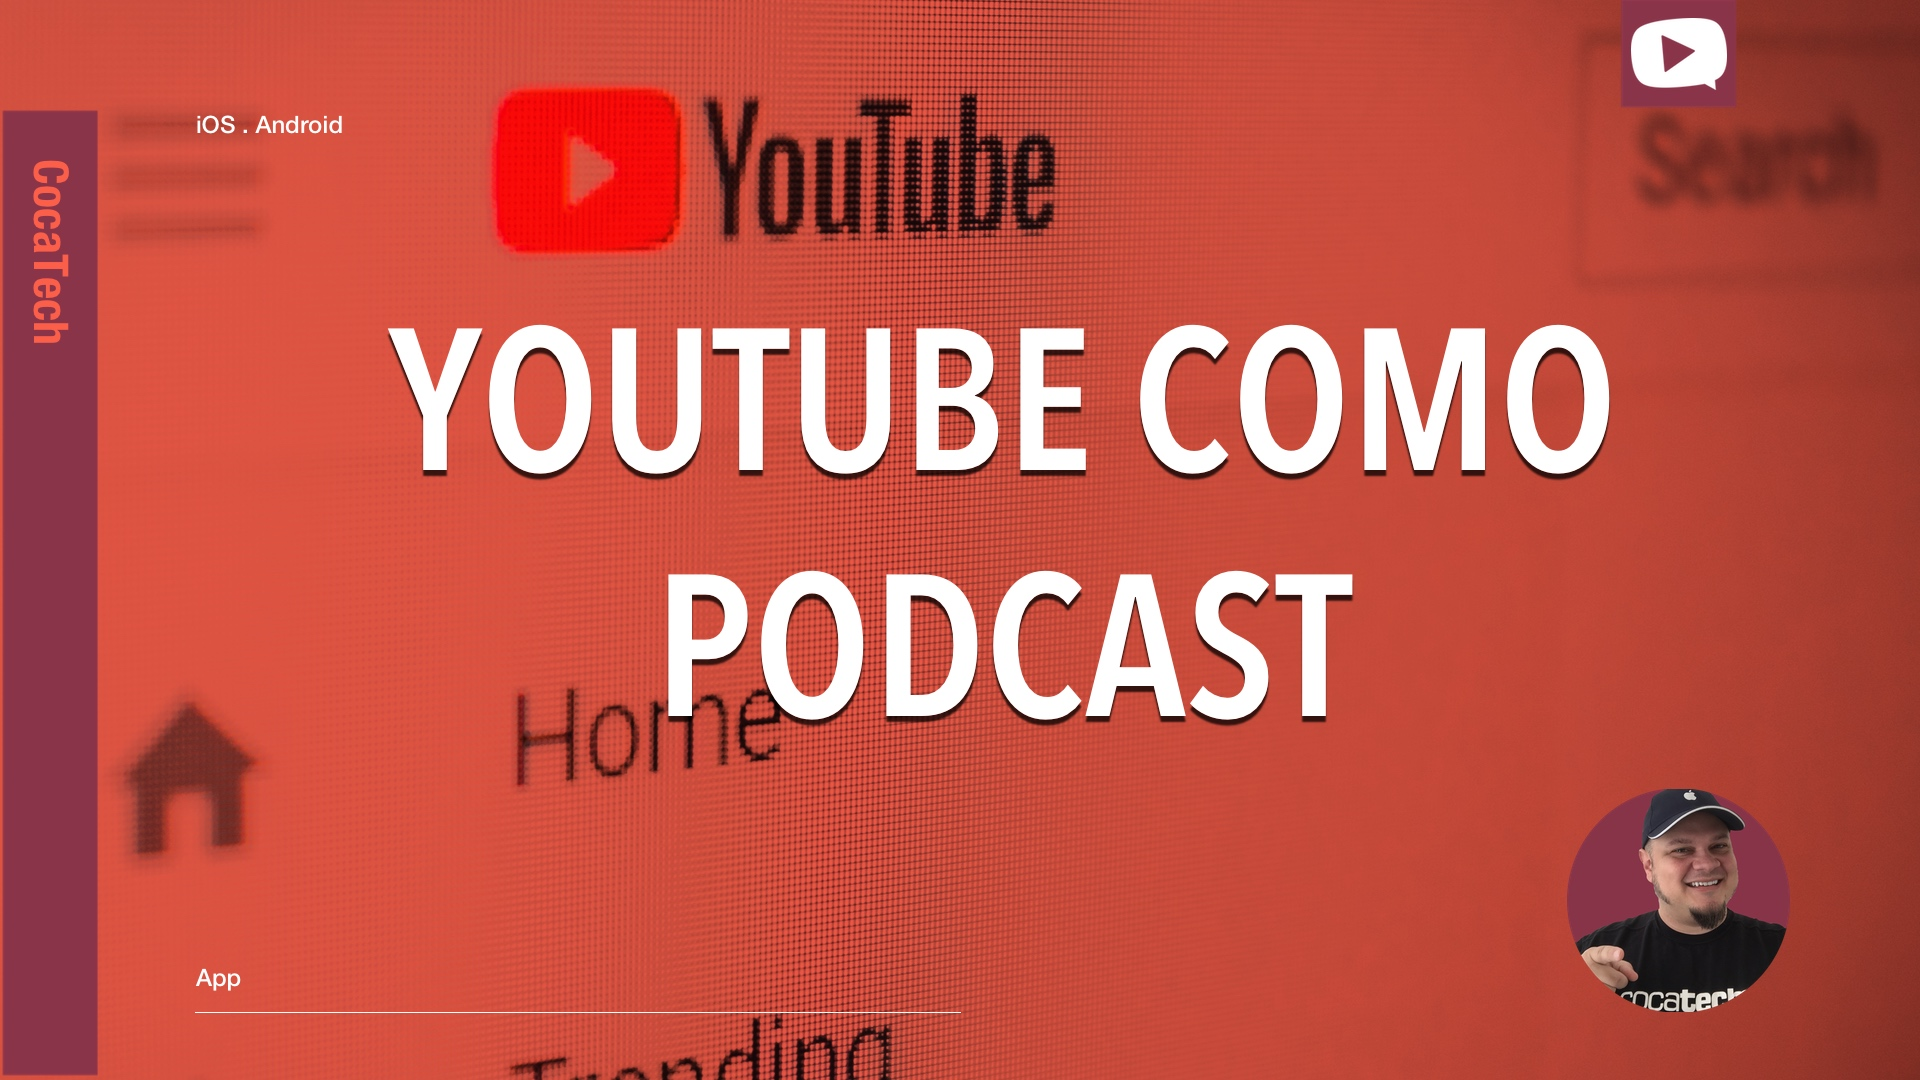 Foto de Como Ouvir/Ver YouTube Como Podcast, Transforme Canais em Feeds RSS